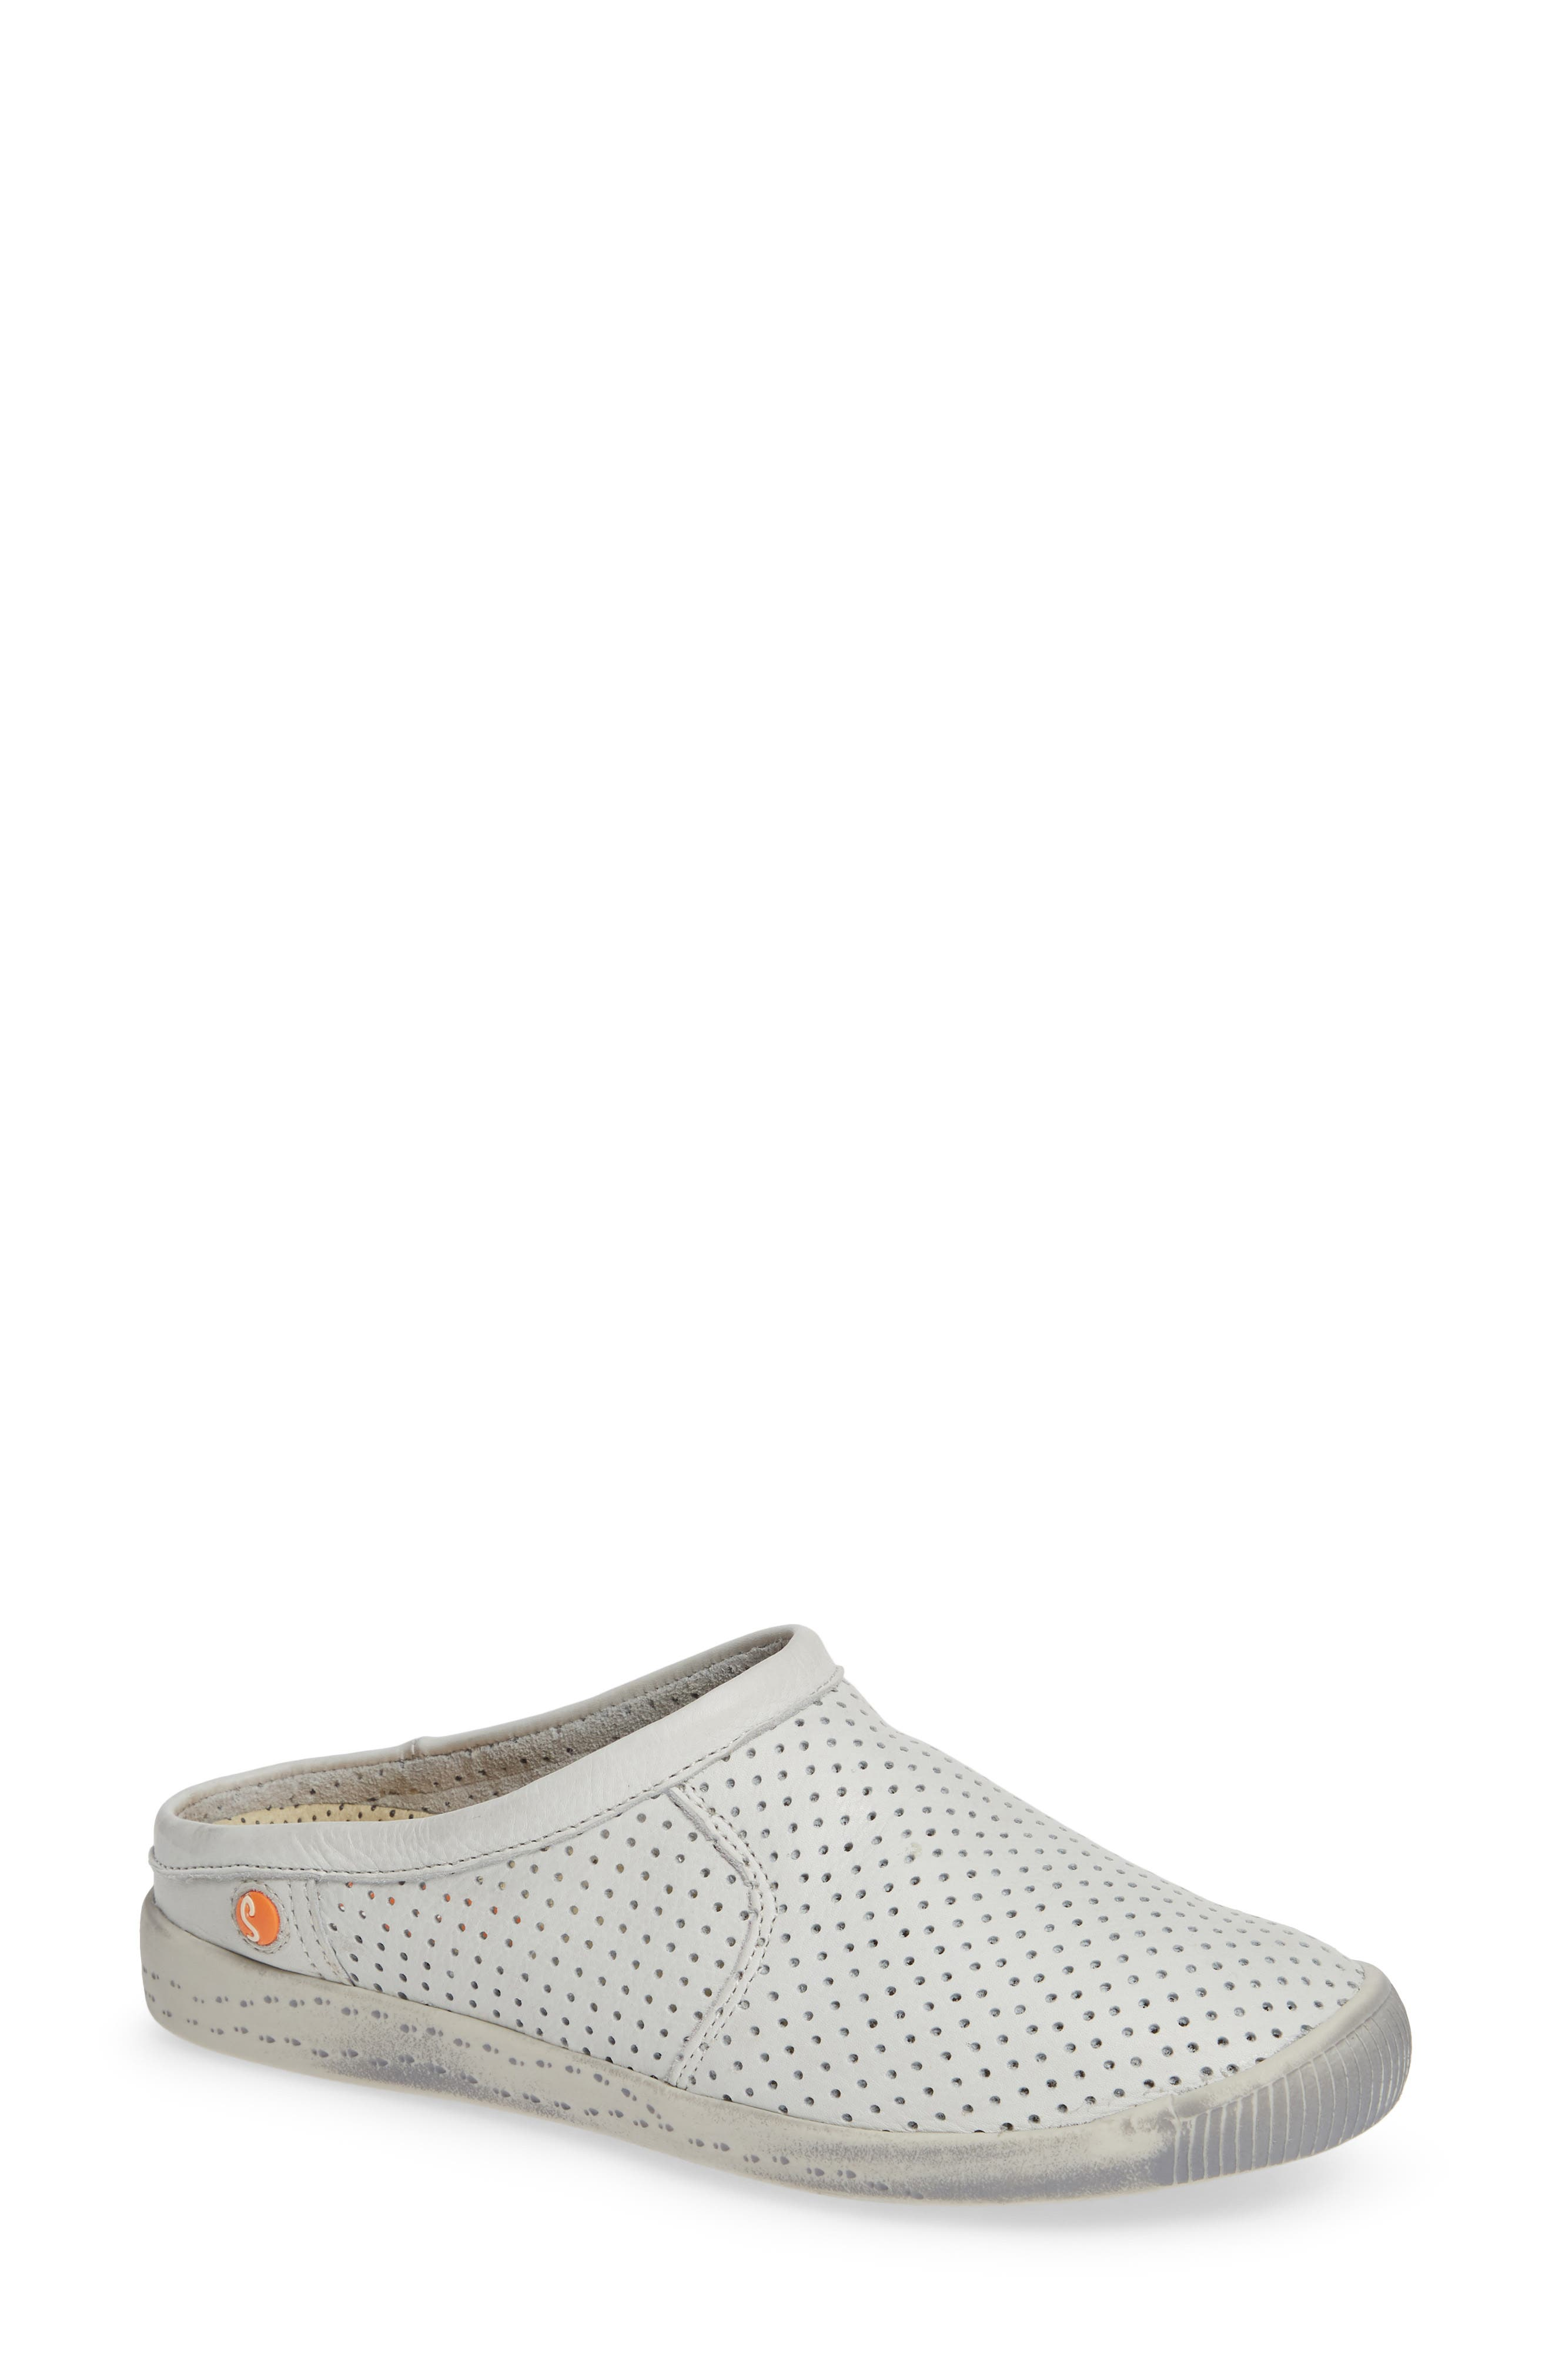 Softinos By Fly London Ima Sneaker Mule - White